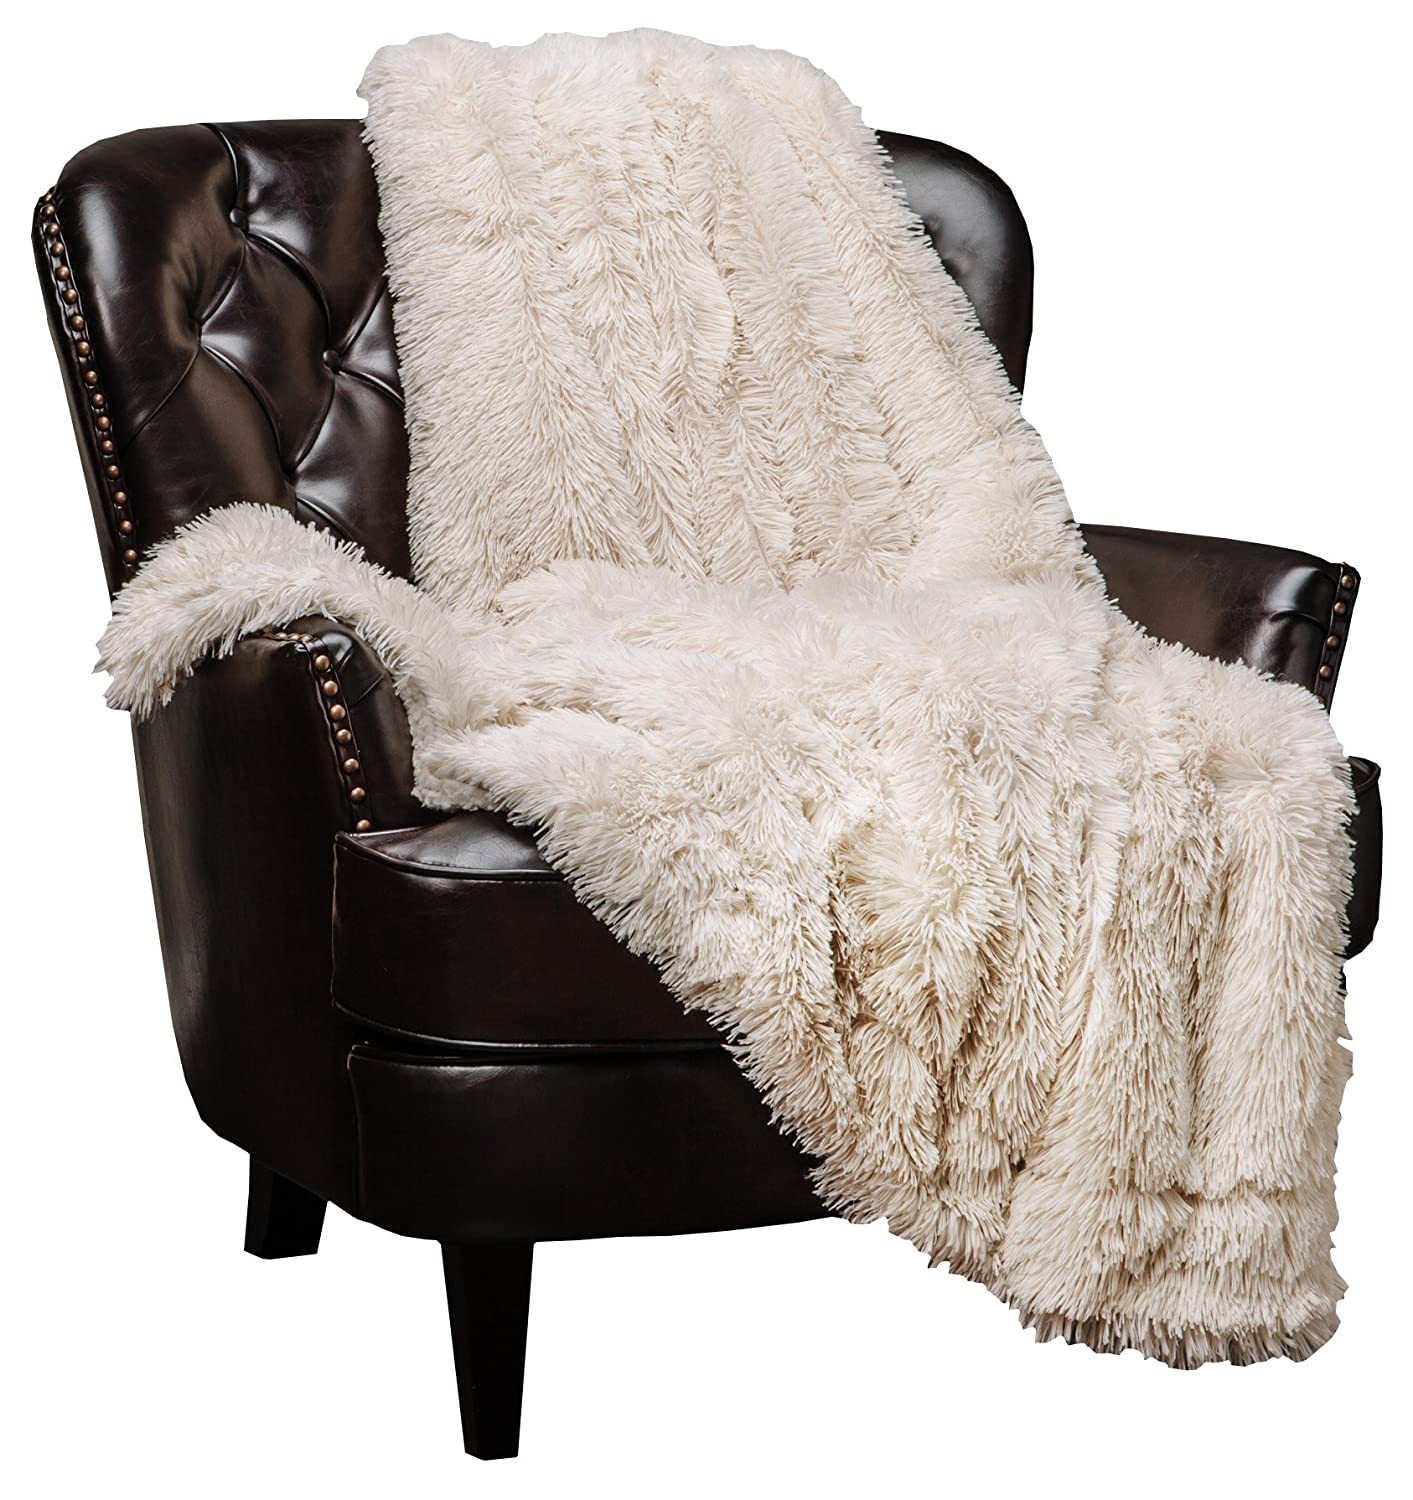 "Chanasya Super Soft Shaggy Longfur Throw Blanket | Snuggly Fuzzy Faux Fur Lightweight Warm Elegant Cozy Plush Sherpa Fleece Microfiber Blanket | for Couch Bed Chair Photo Props - 50""x 65"" - Cream"